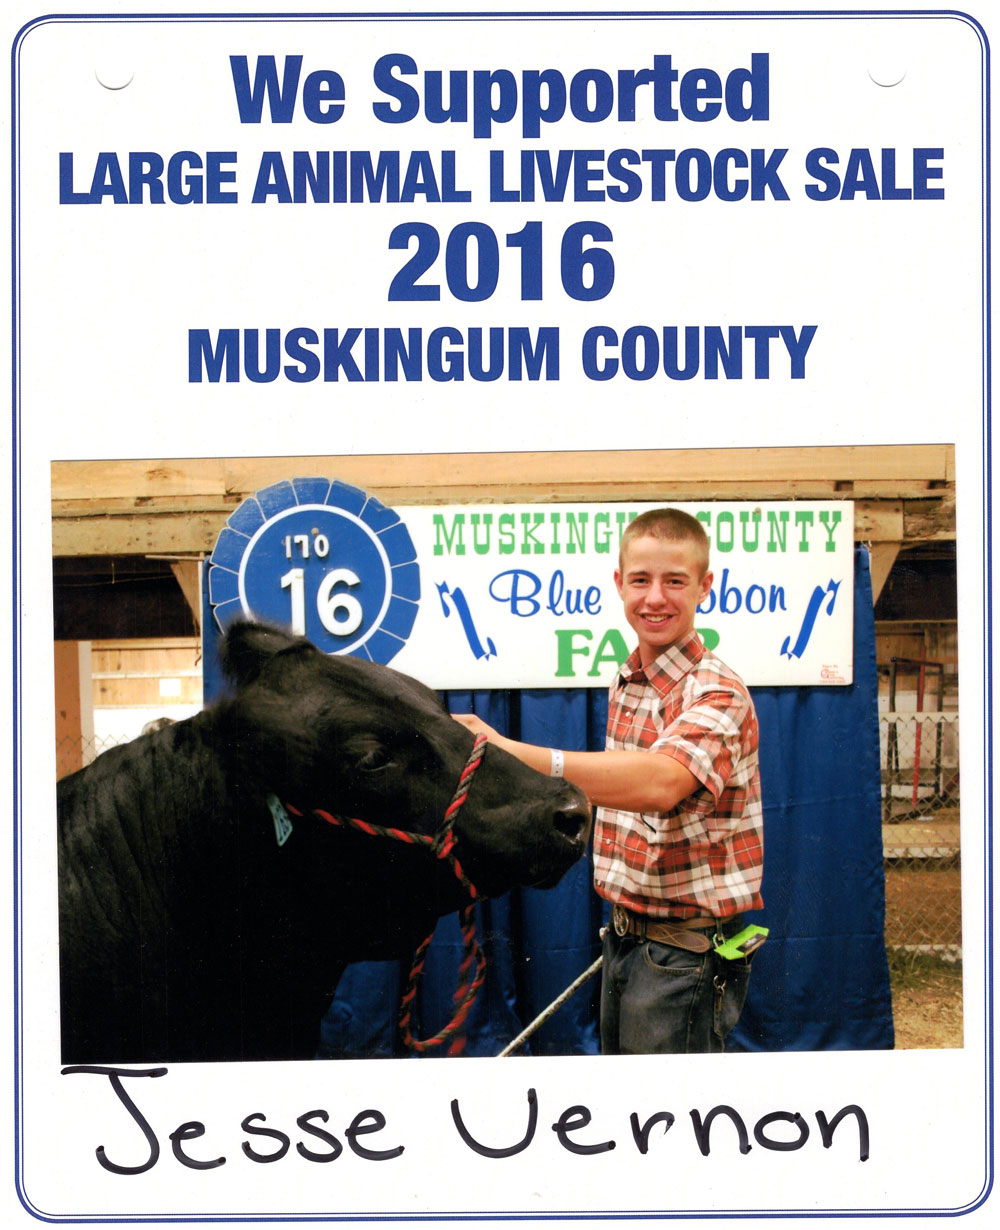 Zemba Bros Community Support Muskingum County Fair Live Stock Auction 9